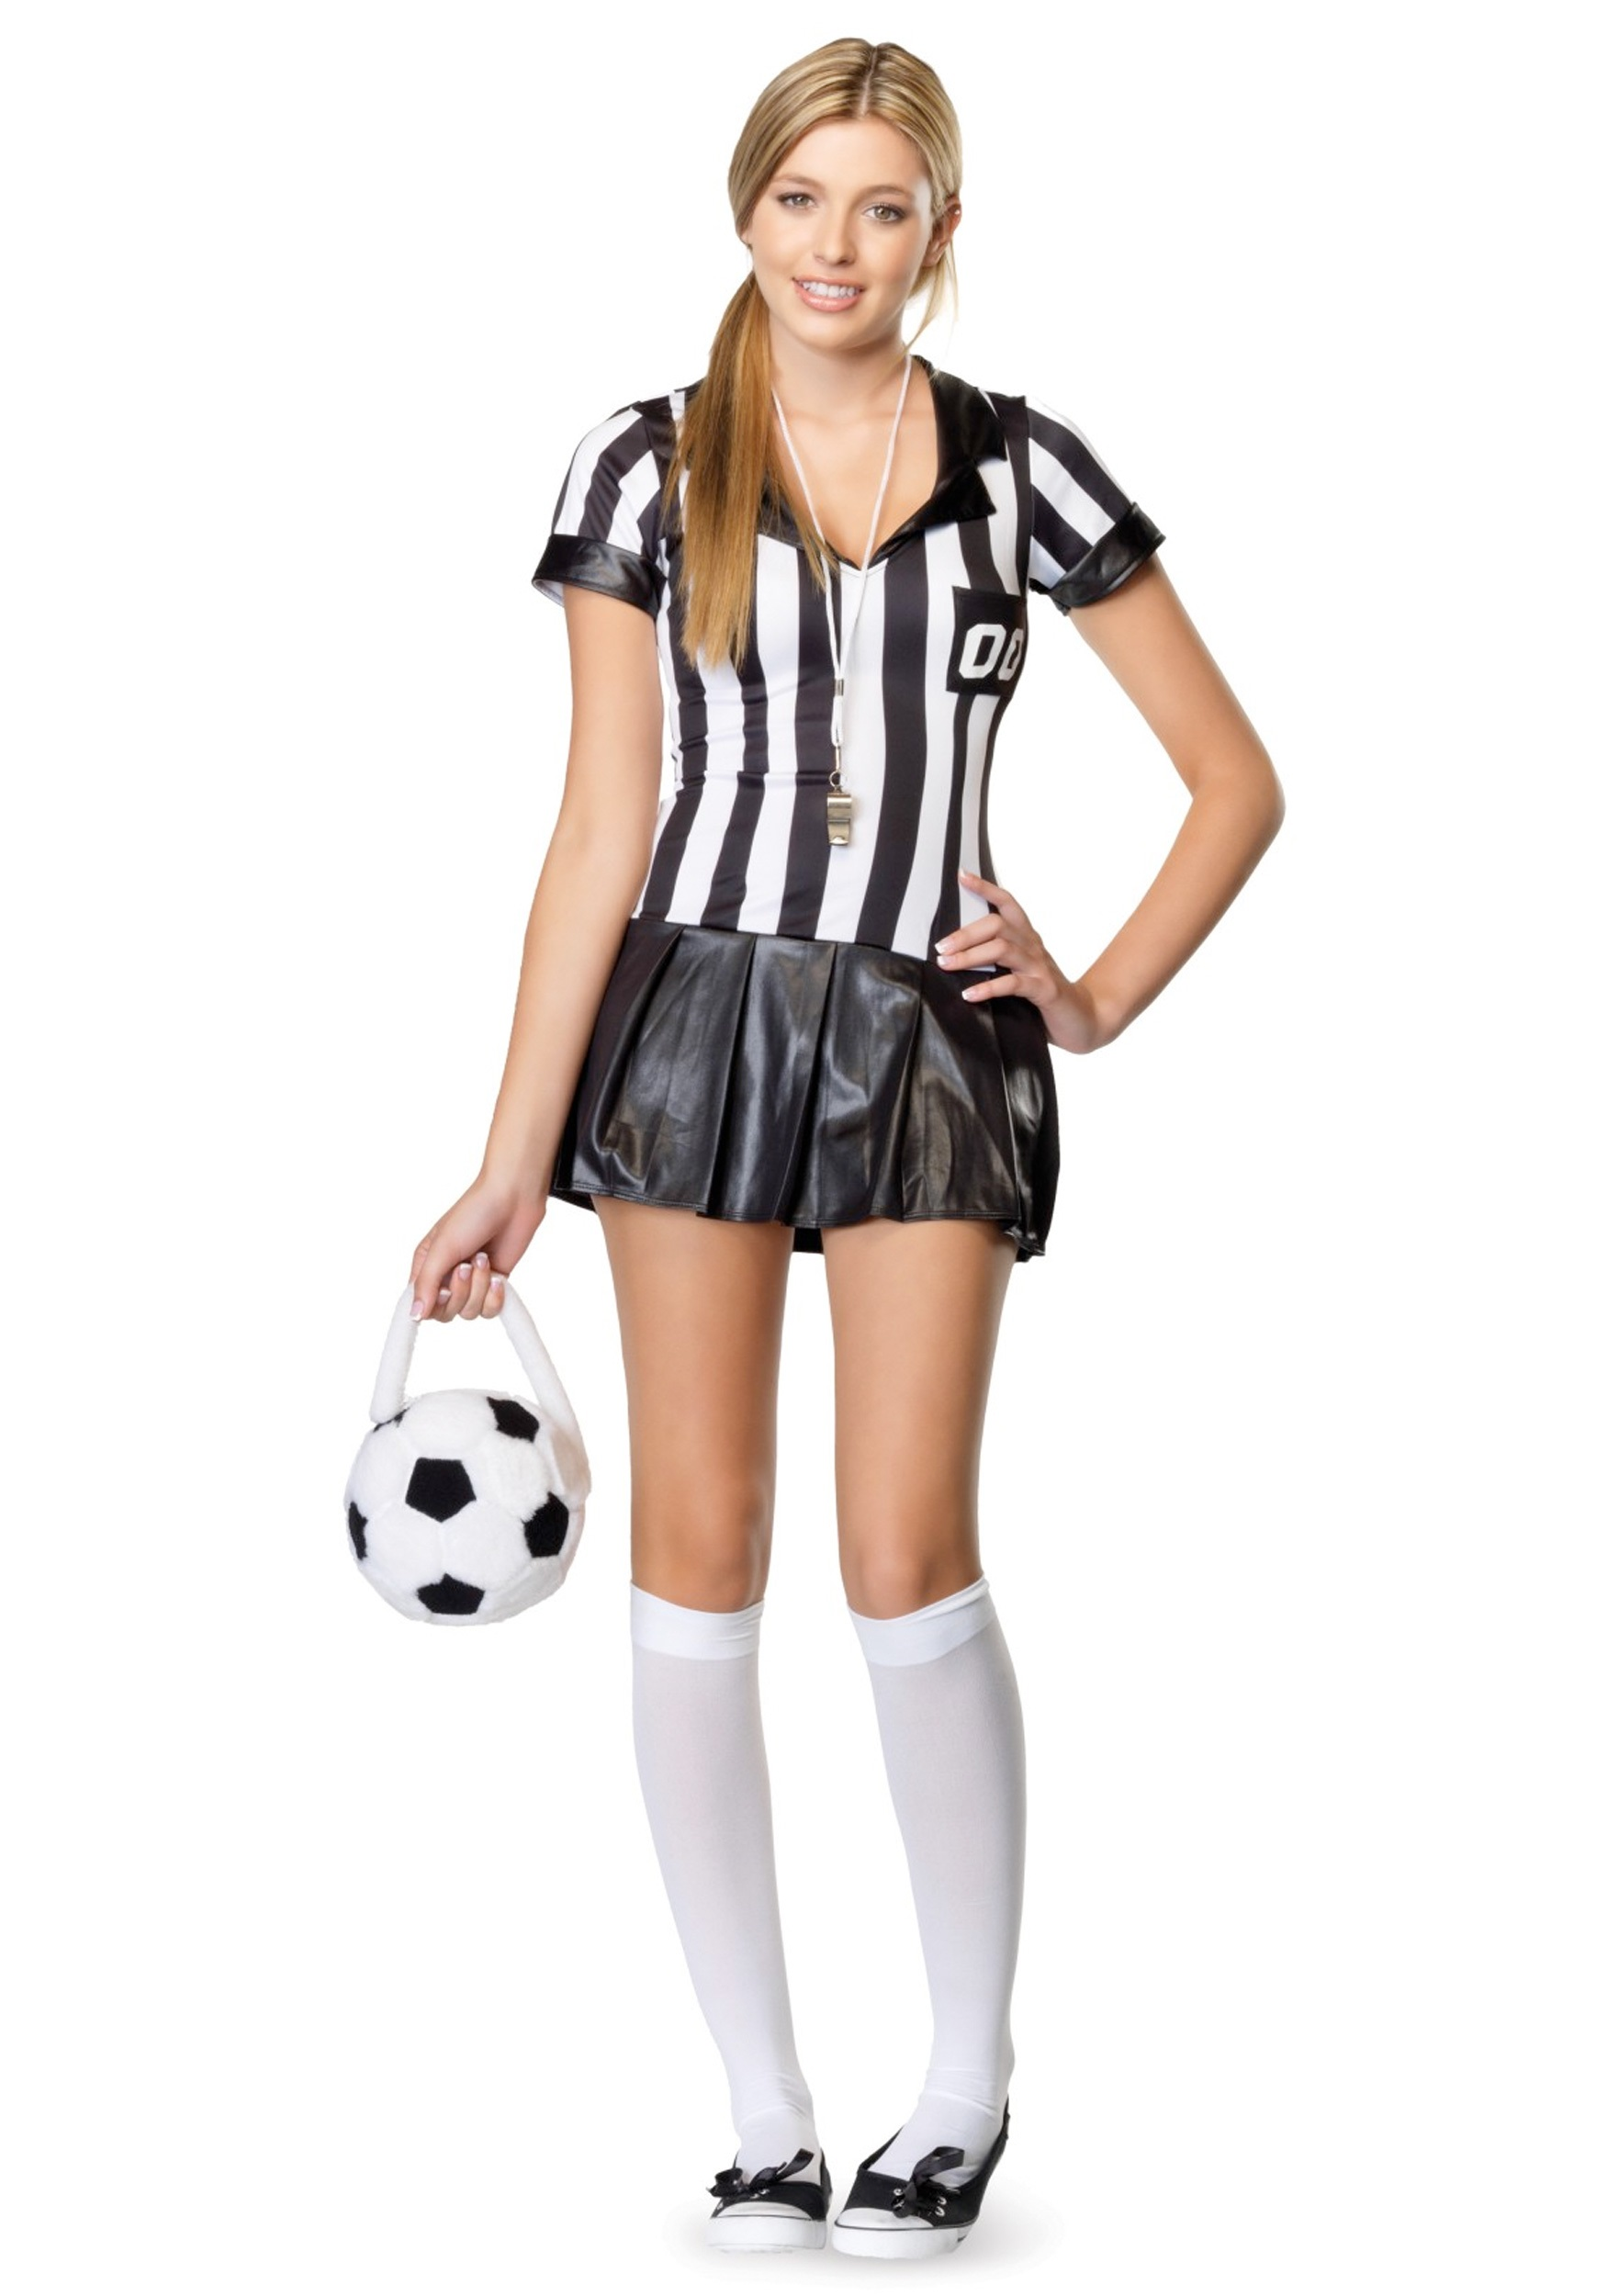 Teen Referee Costume  sc 1 st  Halloween Costumes & Teen Referee Costume - Halloween Costume Ideas 2018